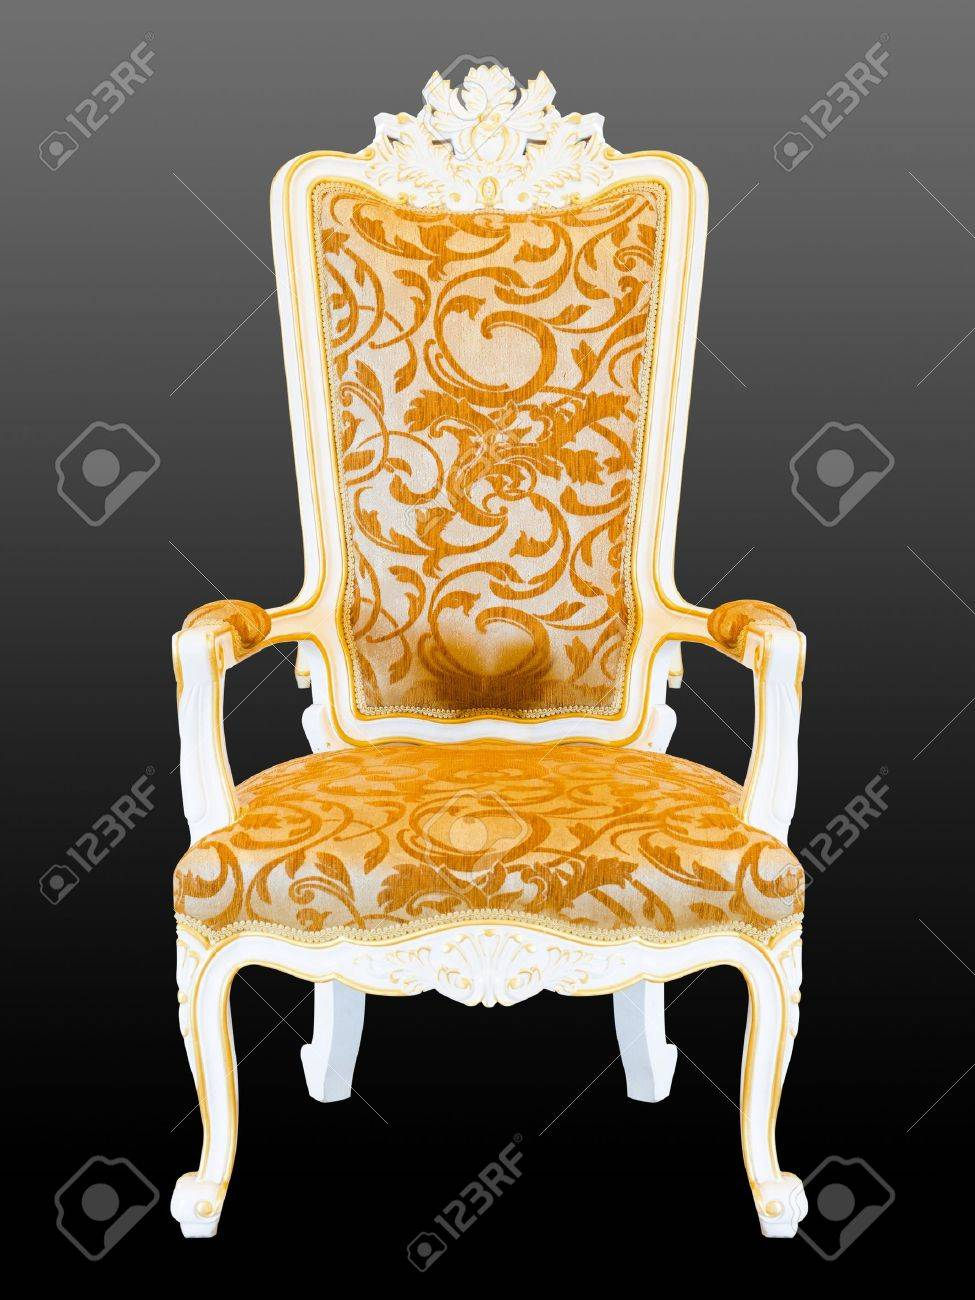 king chair images & stock pictures. royalty free king chair photos